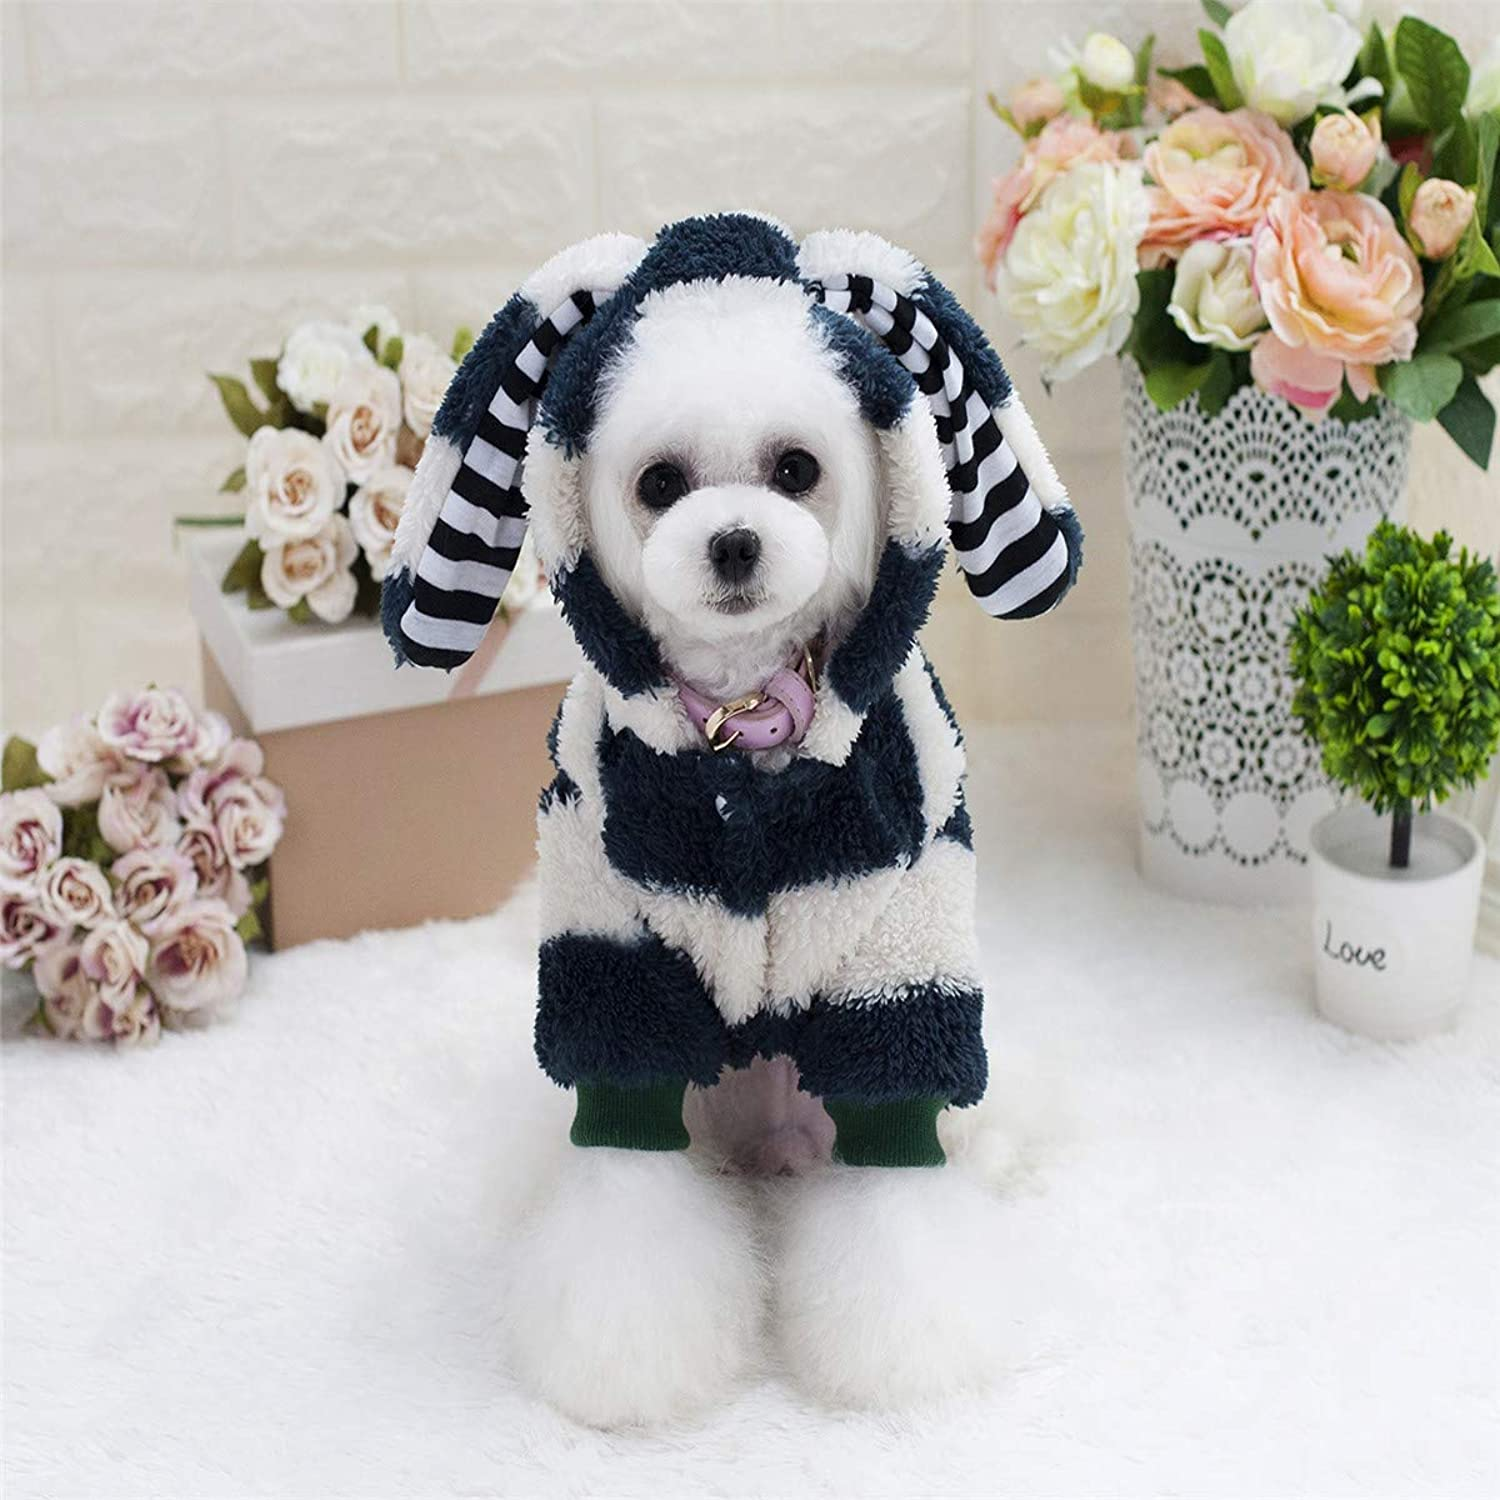 HSDDA Party Pet Costume Dog coat autumn and winter new puppy clothes dog clothes pet clothing big ears rabbit twolegged fleece (color   Pink, Size   XXL) Pet Uniform (color   Green, Size   XXL)